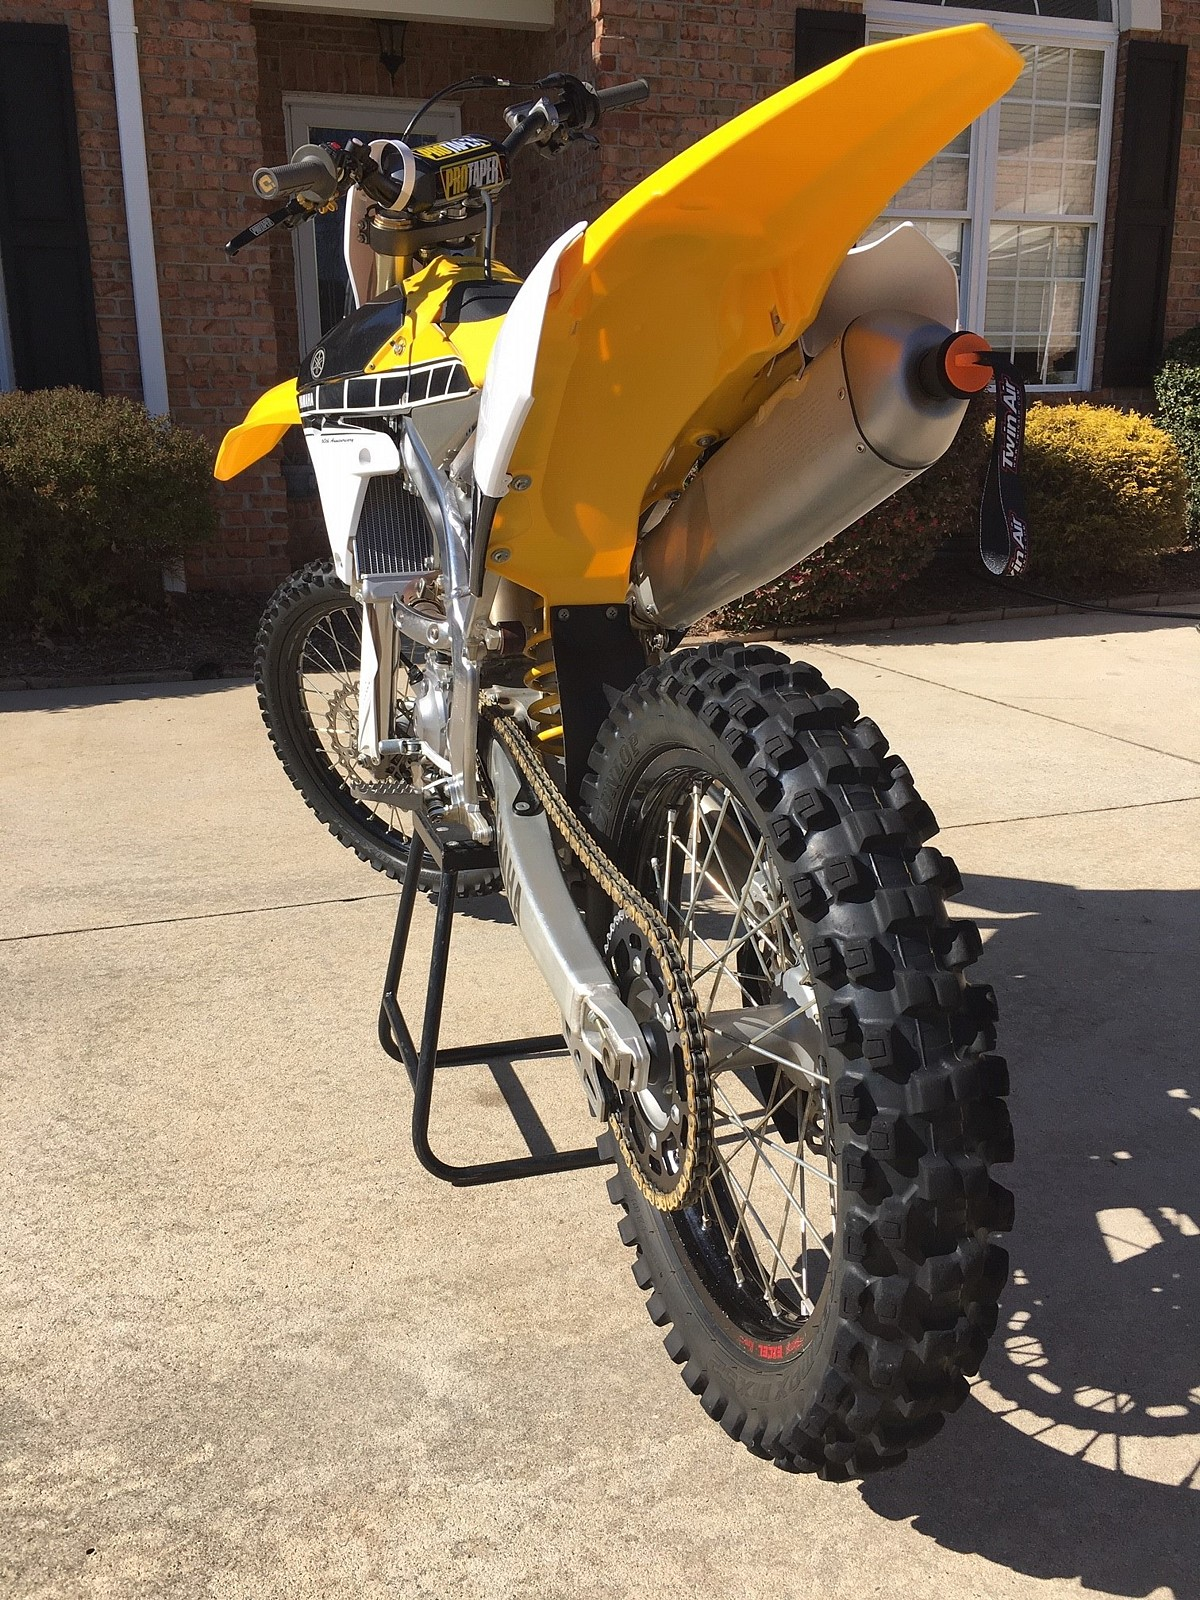 2016 YZF450 Restoration Project  - Poteat1985 - Motocross Pictures - Vital MX